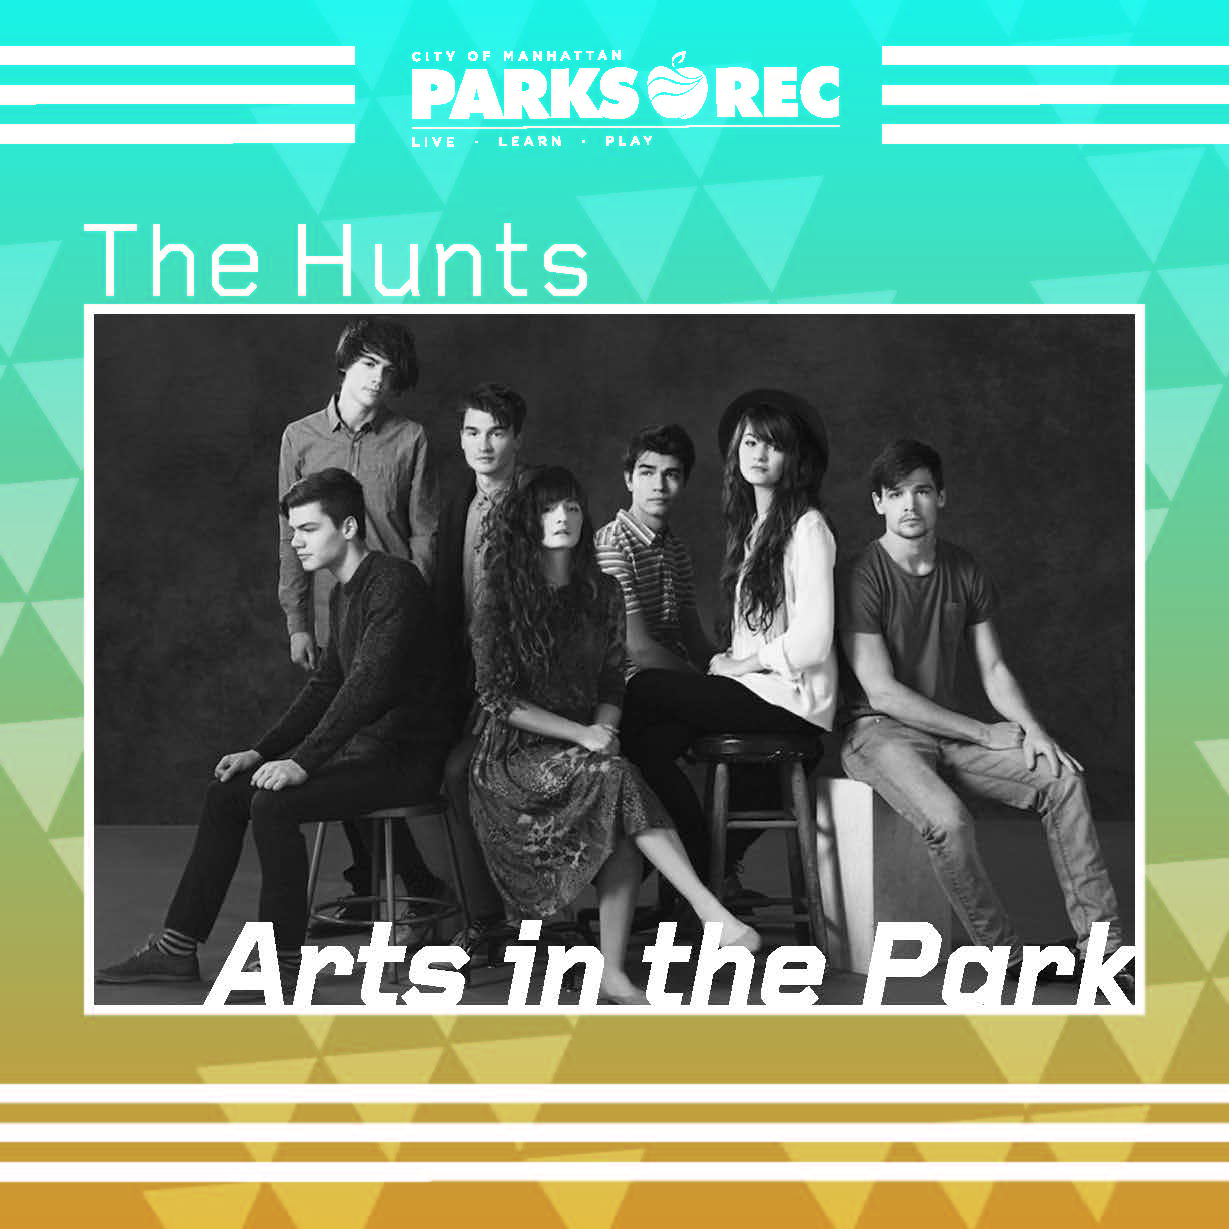 Arts in the Park SocialGraphics2017_Page_5.jpg